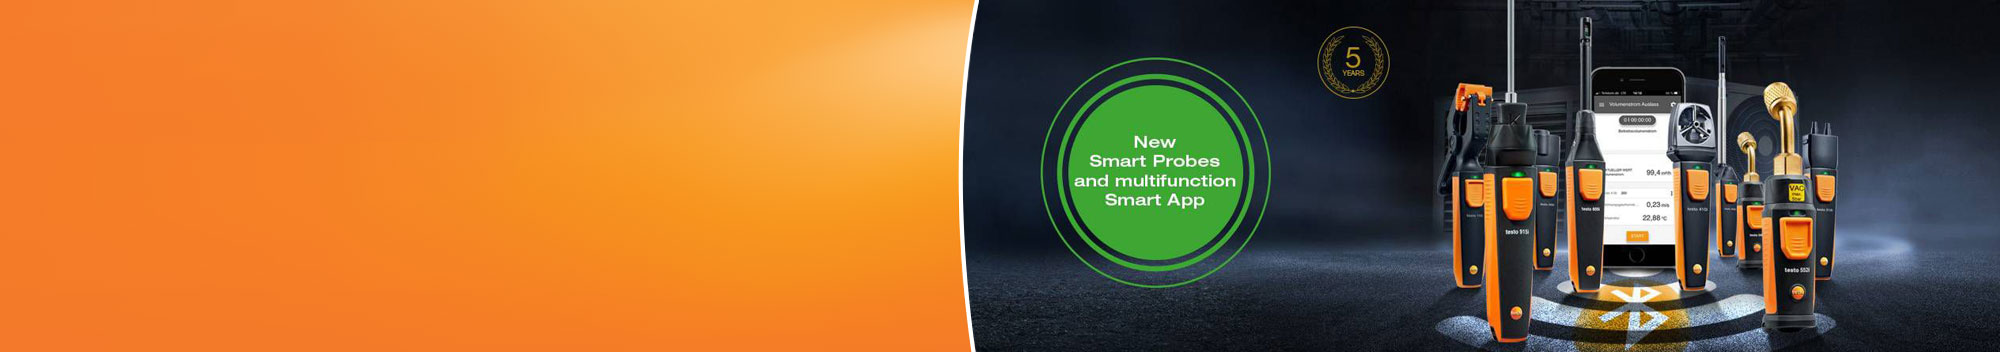 Smart professionals rely on Smart Probes  Everything in view with one click